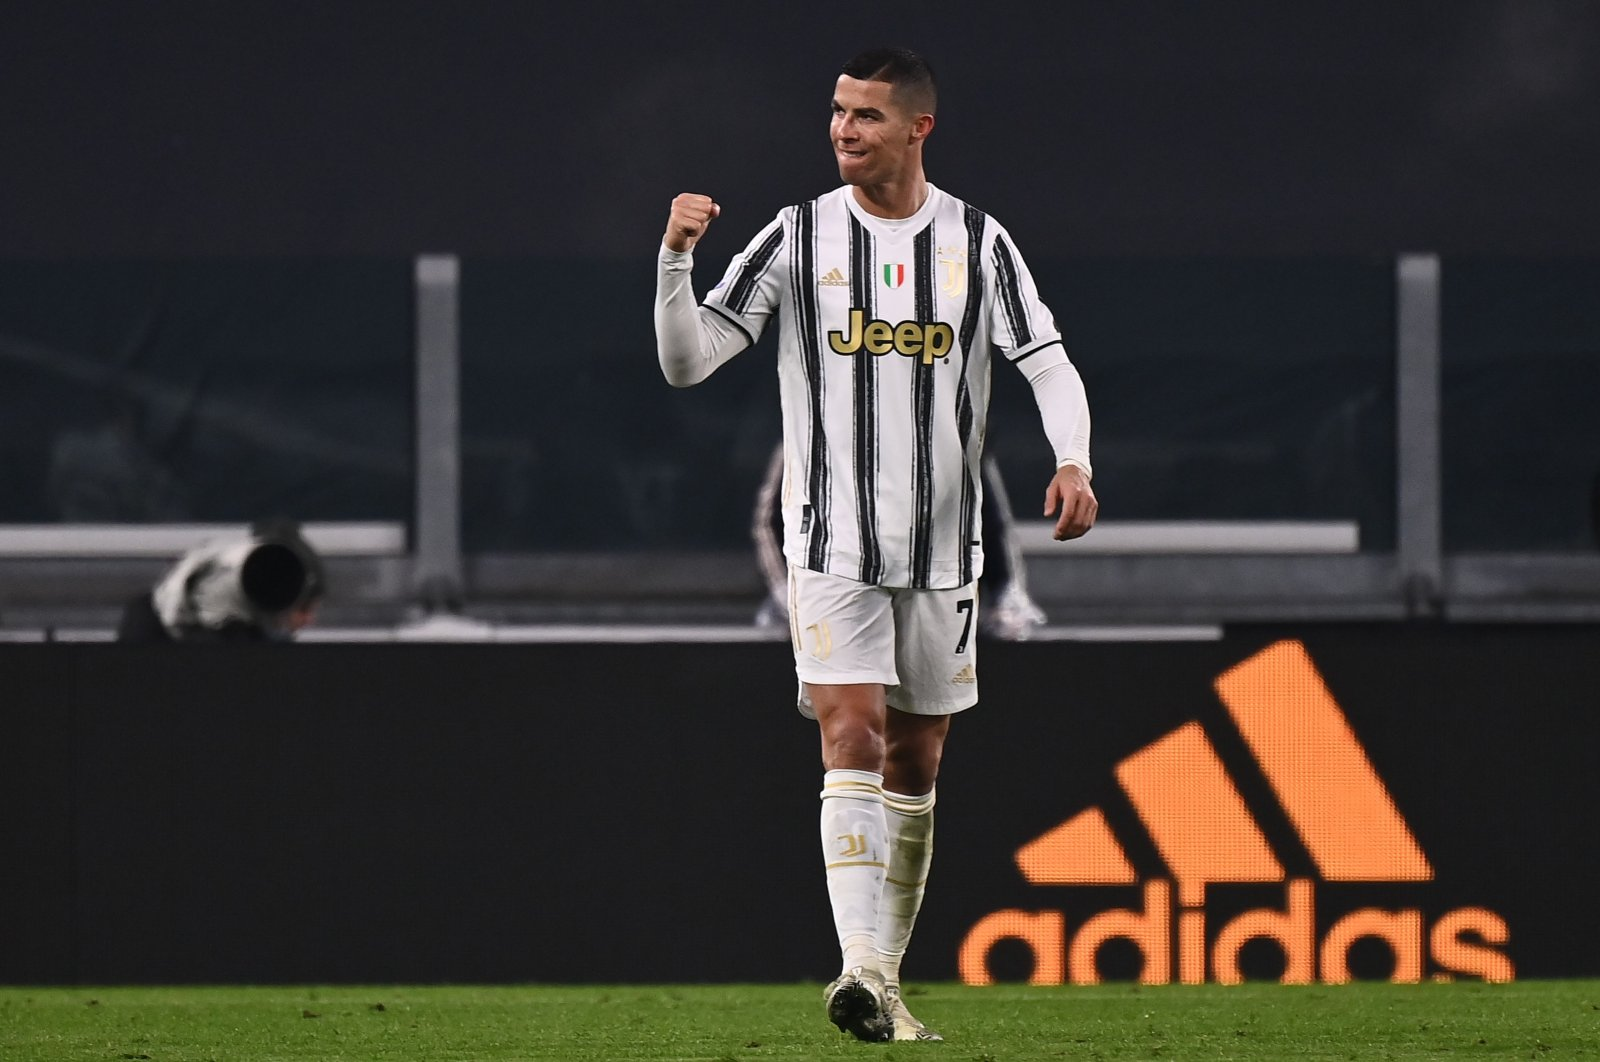 Juventus striker Cristiano Ronaldo celebrates after scoring a goal during the Italian Serie A football match between Juventus and Udinese at the Allianz Stadium in Turin, Italy, Jan. 3, 2021. (AFP Photo)